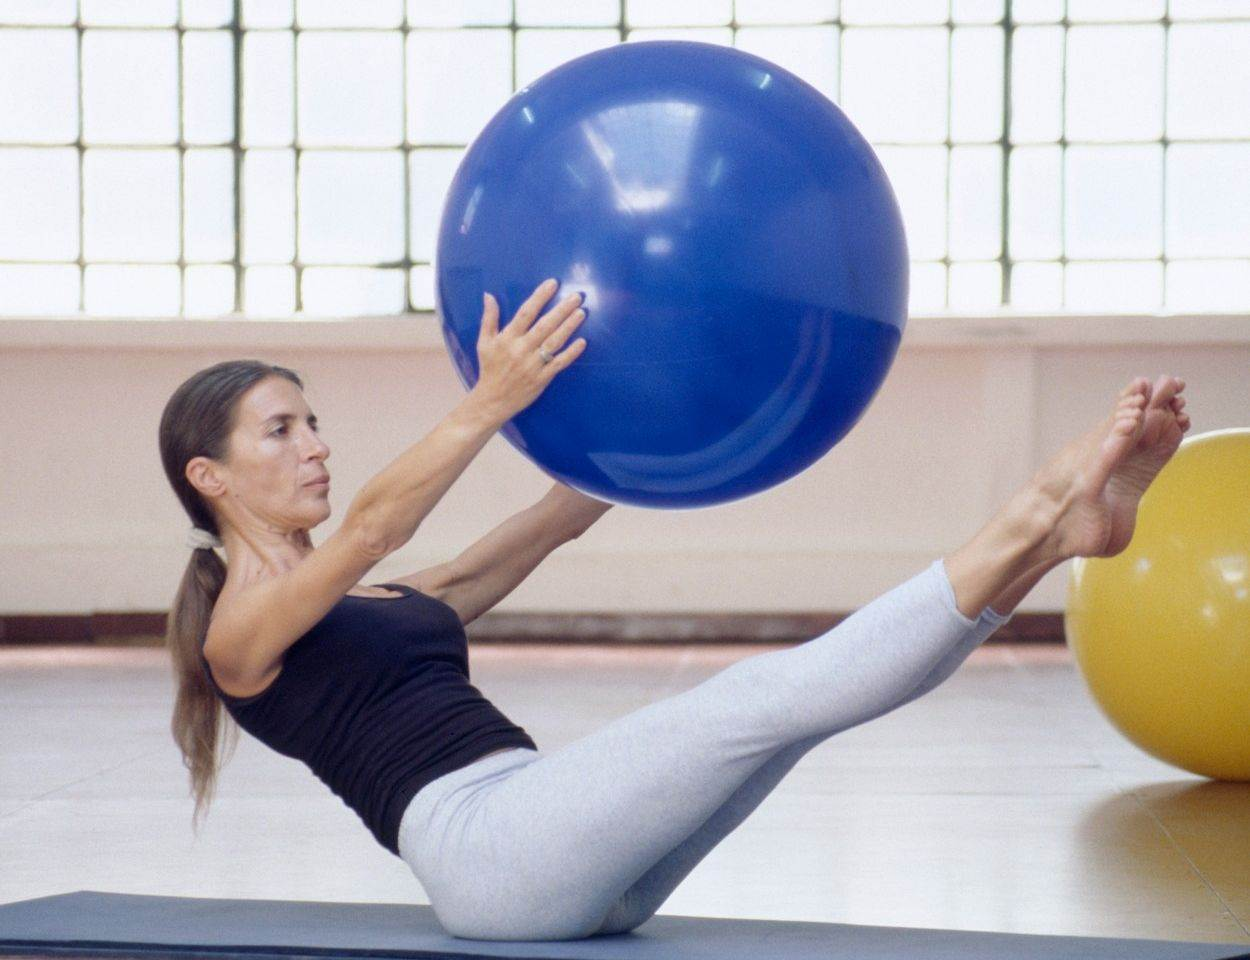 woman;female;exercises;exercise;pilates;exercising;system;method;technique;fitness;fit;healthy;health;balance;balancing;arm;stomach;leg;muscle;muscles;posture;pastime;hobby;sport;sporting;leisure;people;activity;activities;mat;floor;gym;gymnasium;swiss;ball